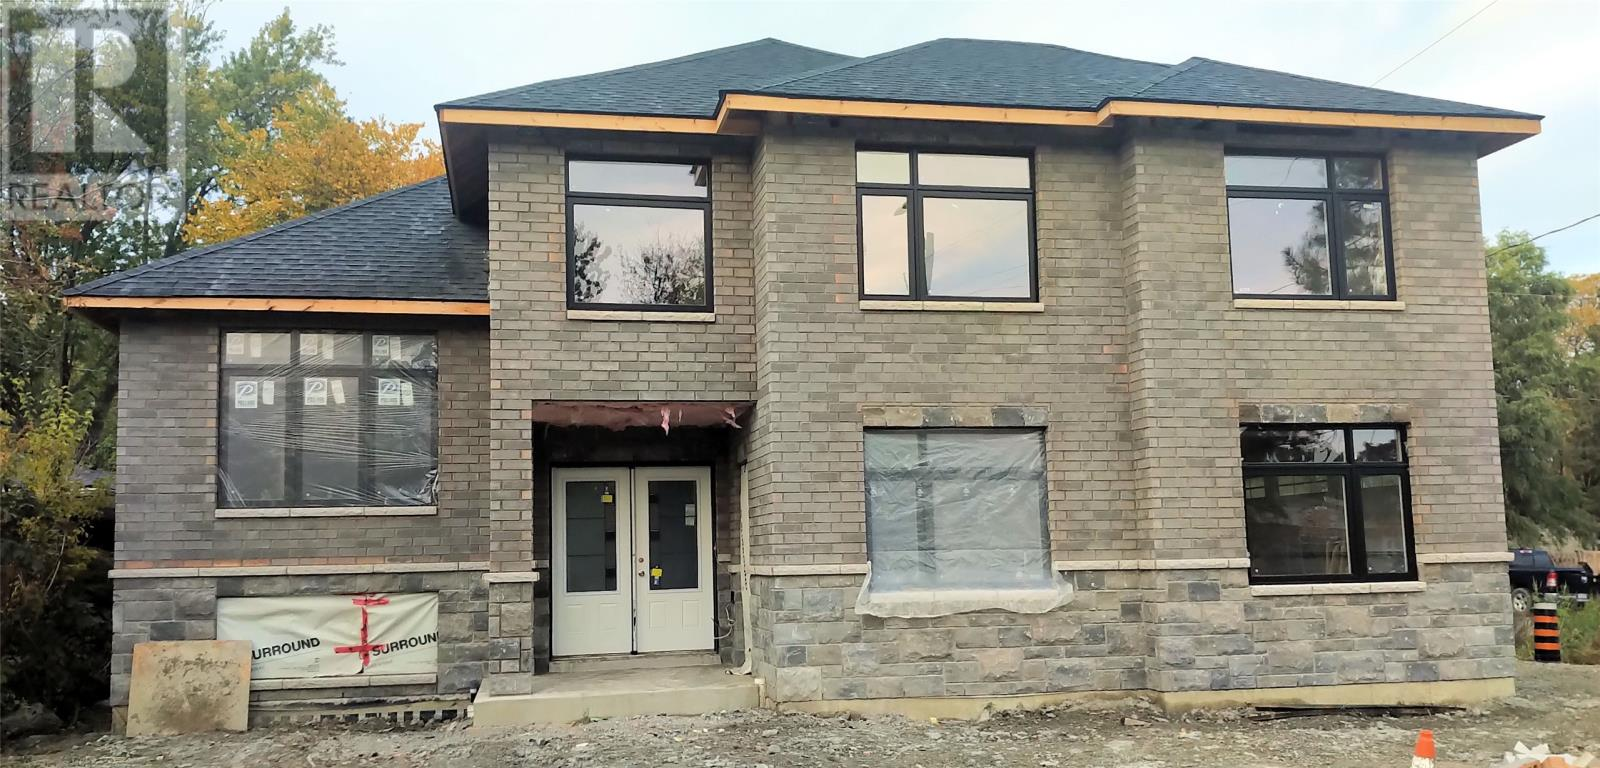 Removed: 333 Liberty, Windsor, ON - Removed on 2019-11-12 06:48:02